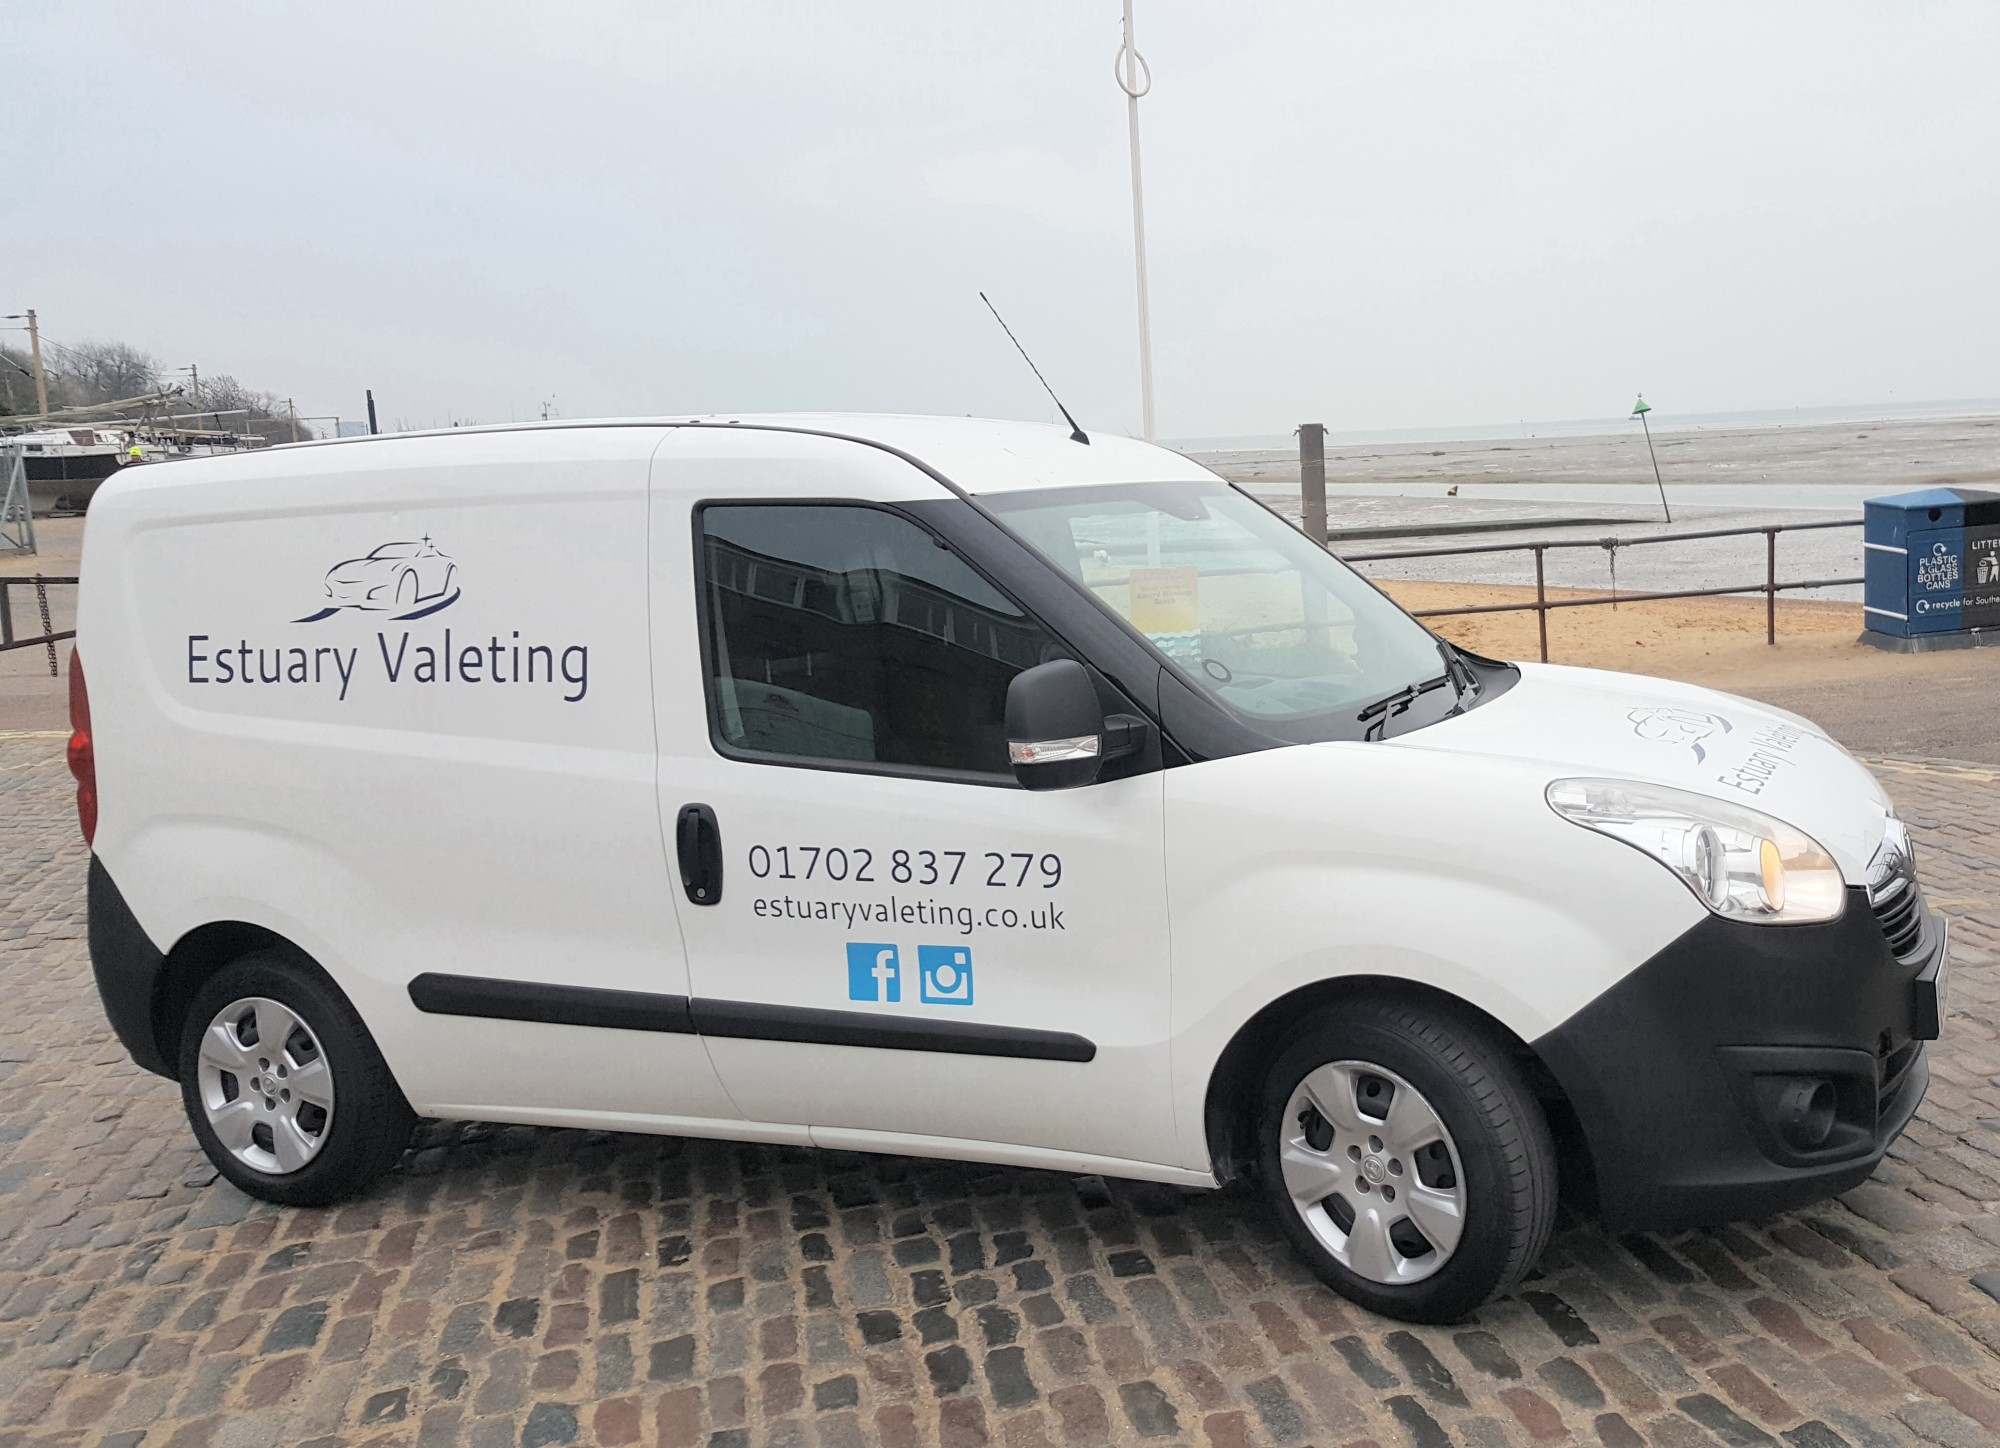 Estuary Valeting